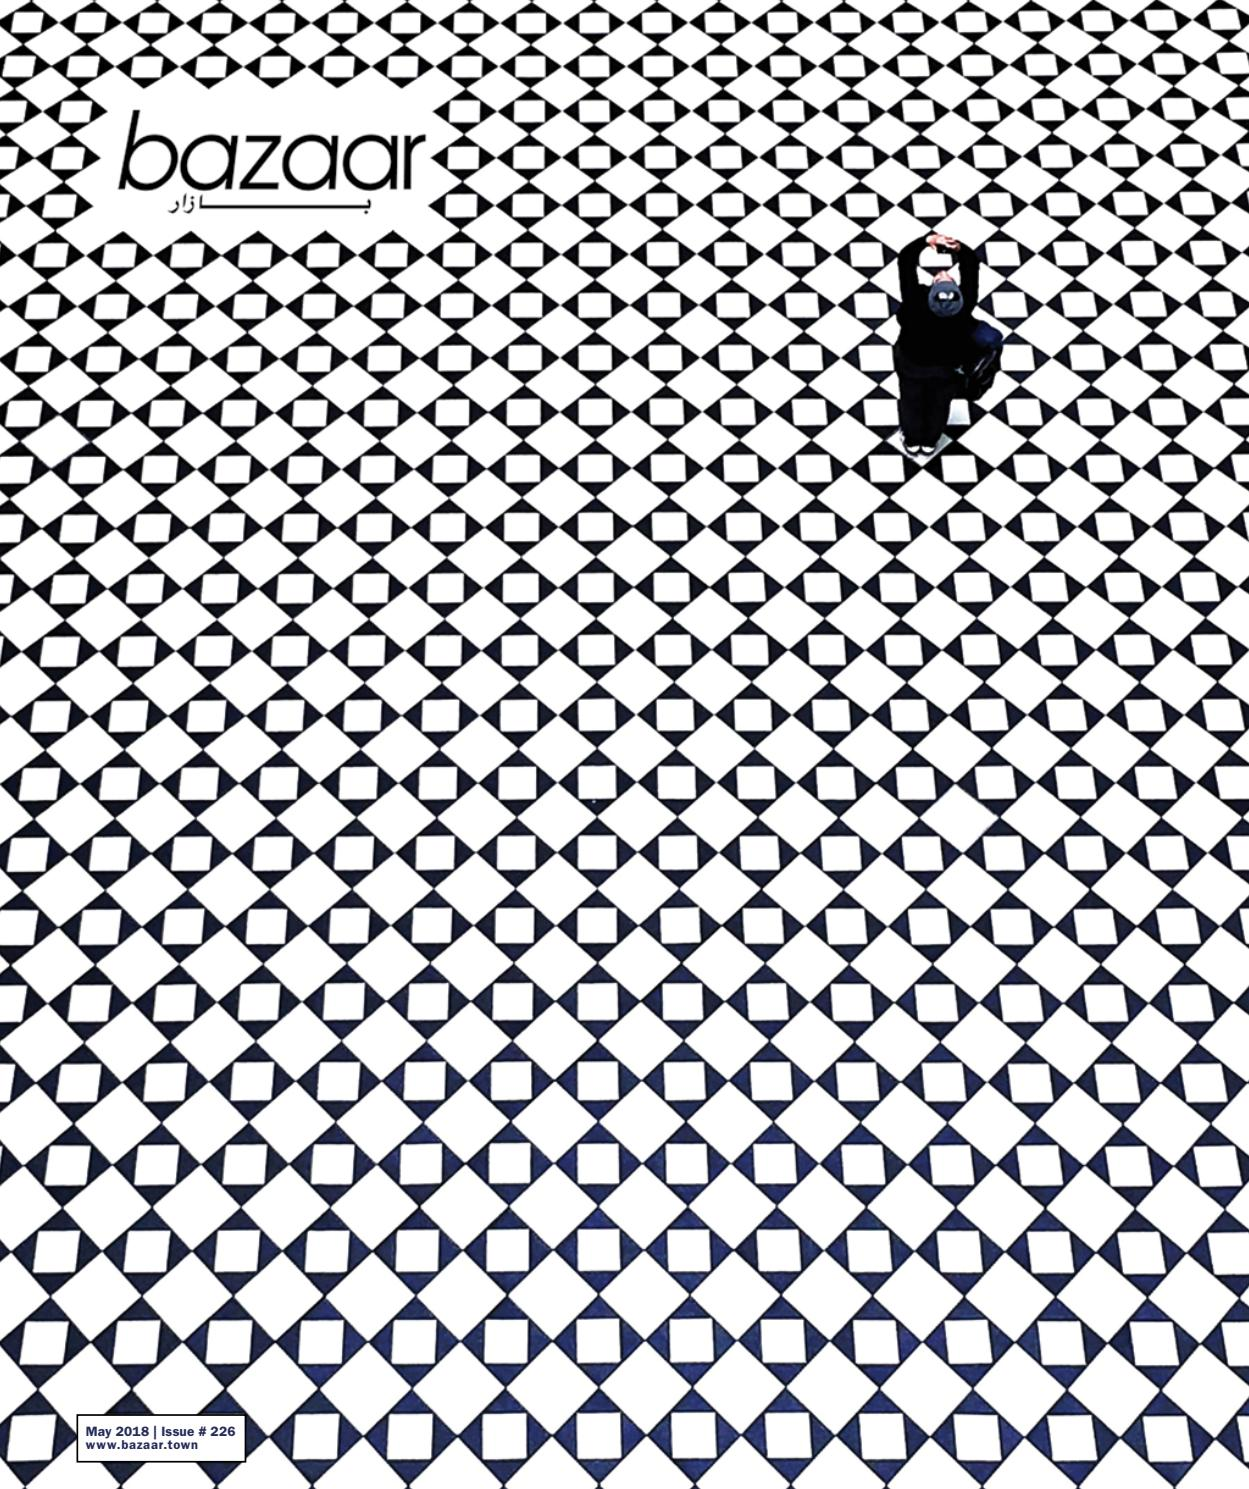 bazaar May 2018 issue by bazaar magazine - issuu